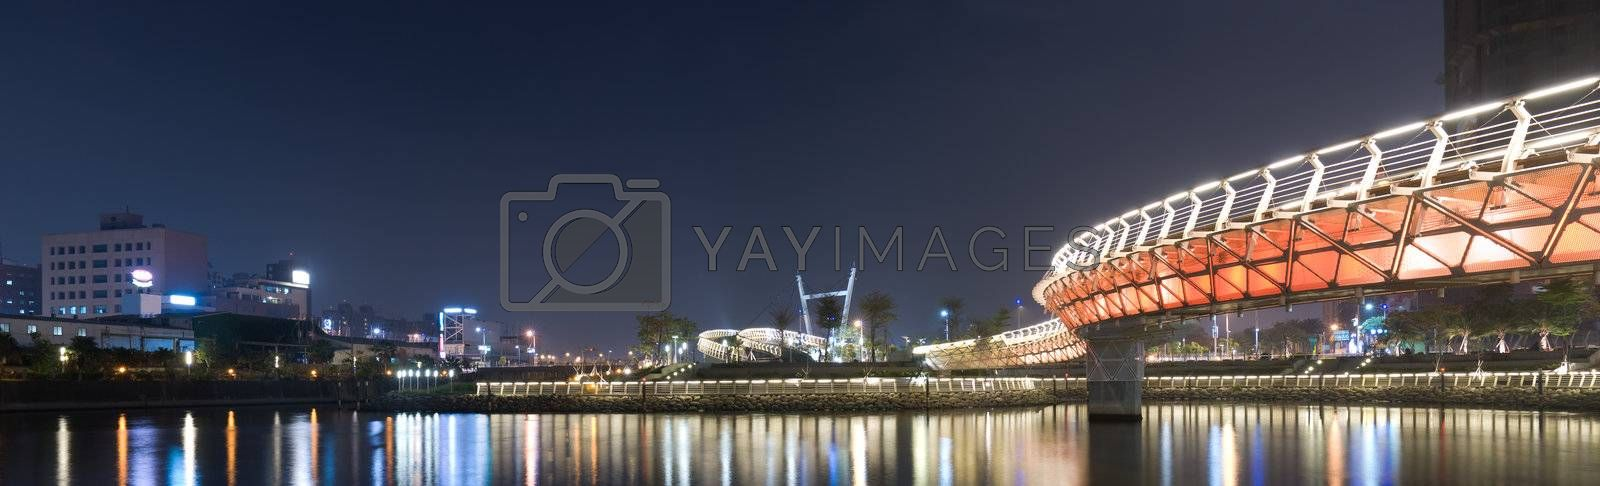 City night scenic of panorama with buildings and color bridge in Kaohsiung, Taiwan.